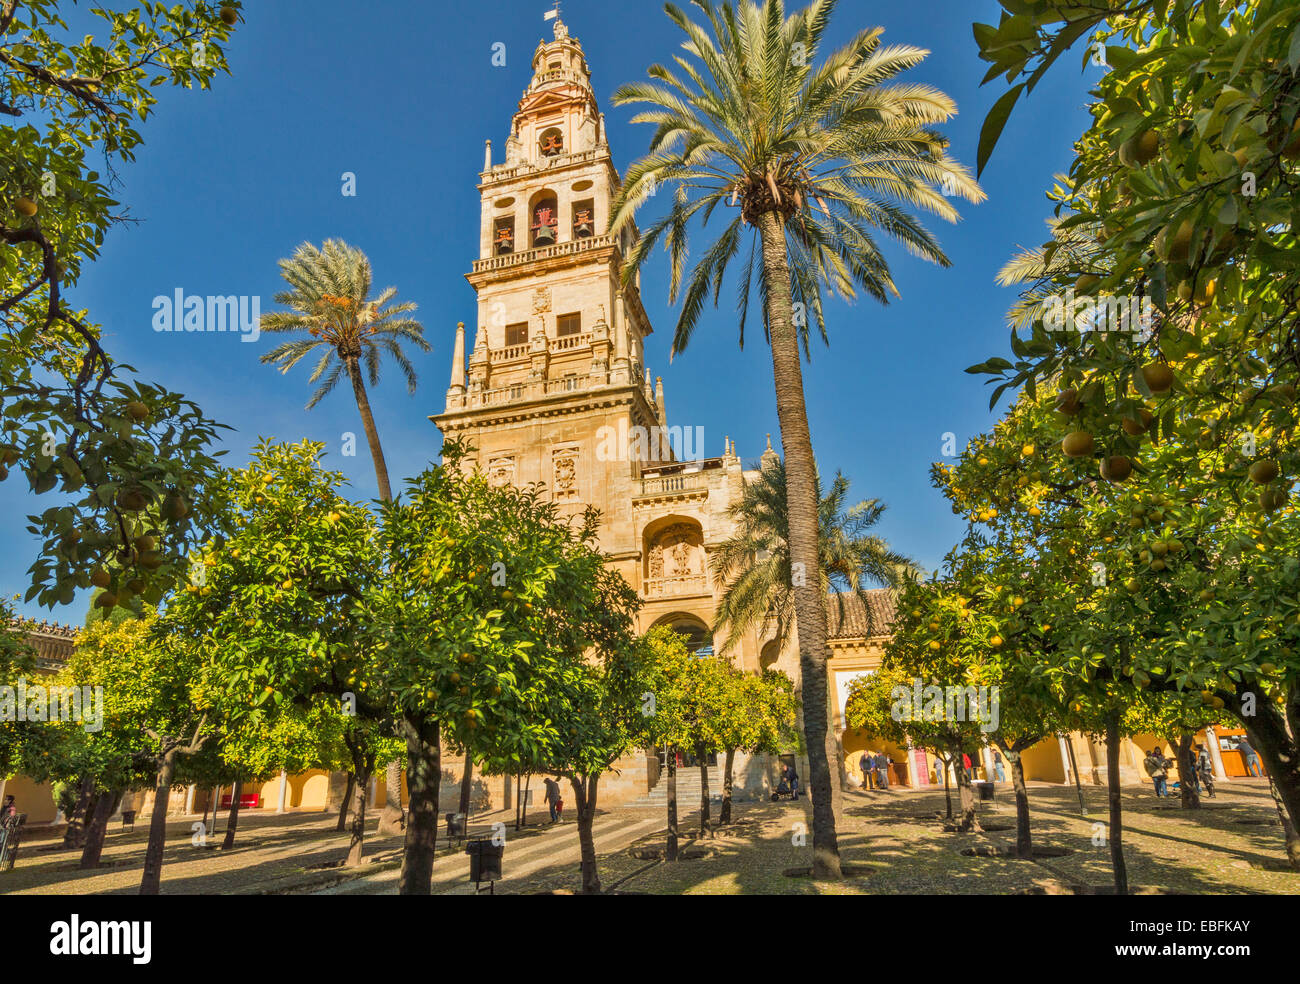 MOSQUE CATHEDRAL OR MEZQUITA CORDOBA  THE MAIN TOWER AND BELLS WITH ORANGE TREES IN A COURTYARD - Stock Image